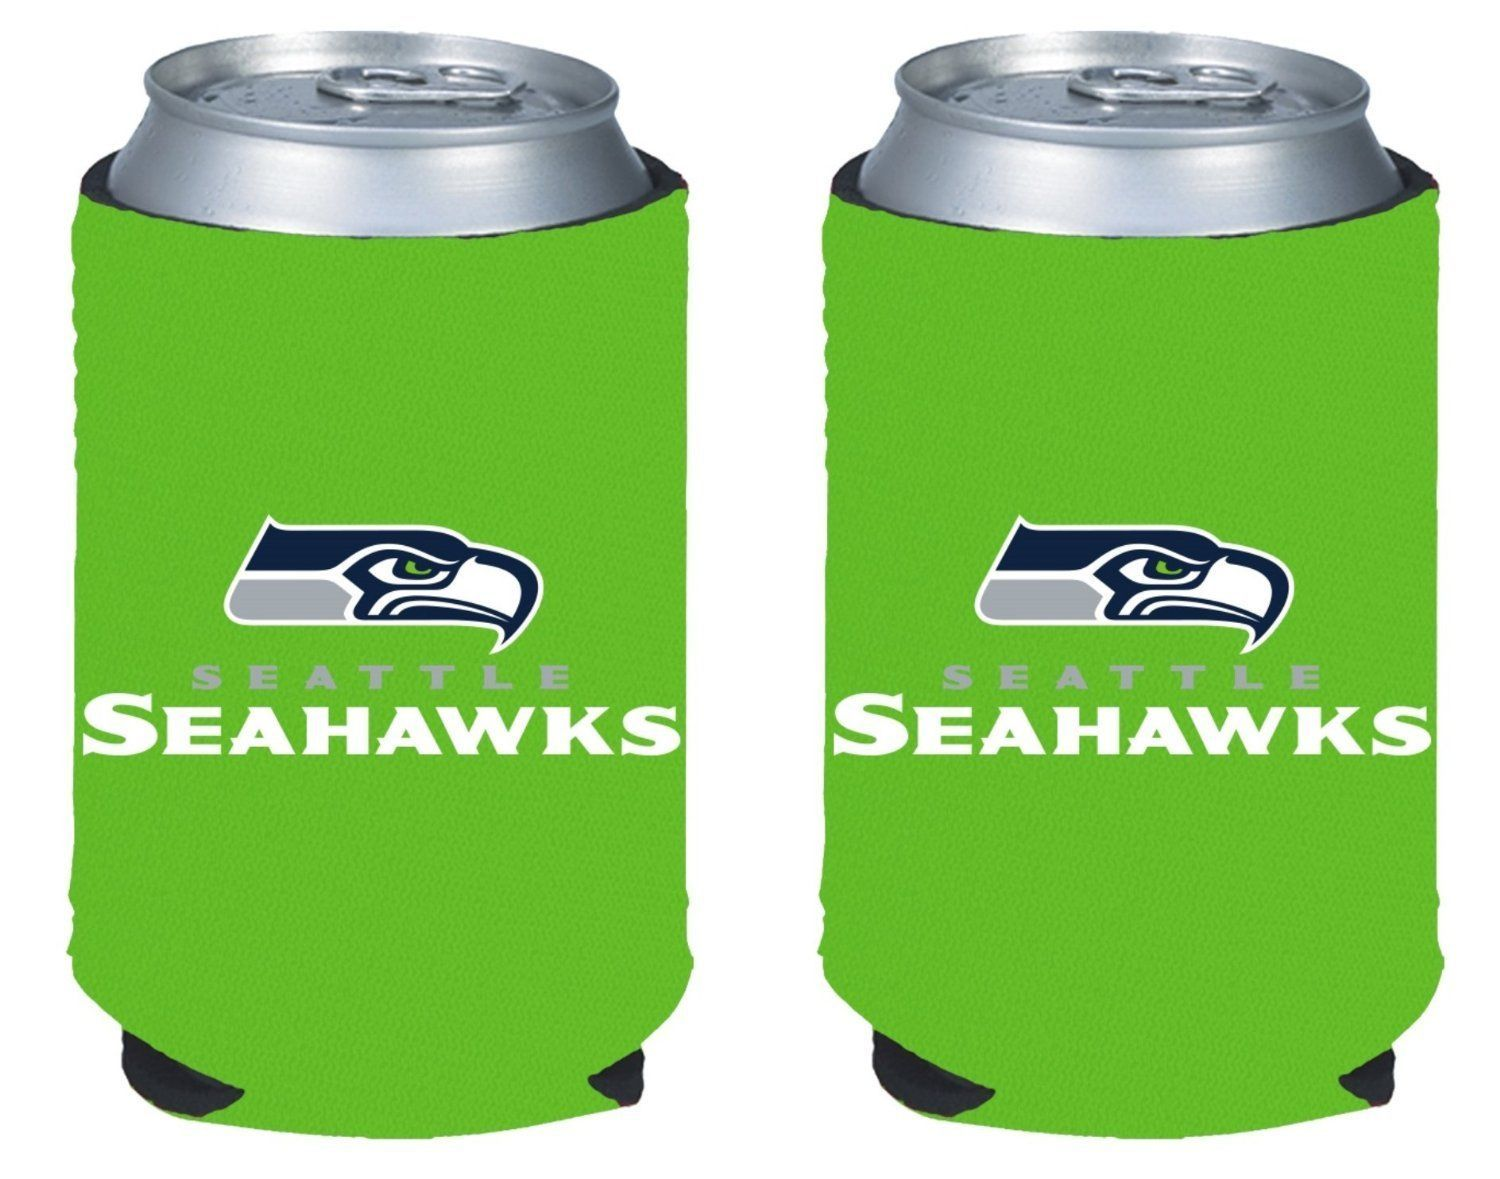 2 GREEN SEATTLE SEAHAWKS BEER SODA CAN BOTTLE KOOZIE KADDY HOLDER NFL FOOTBALL